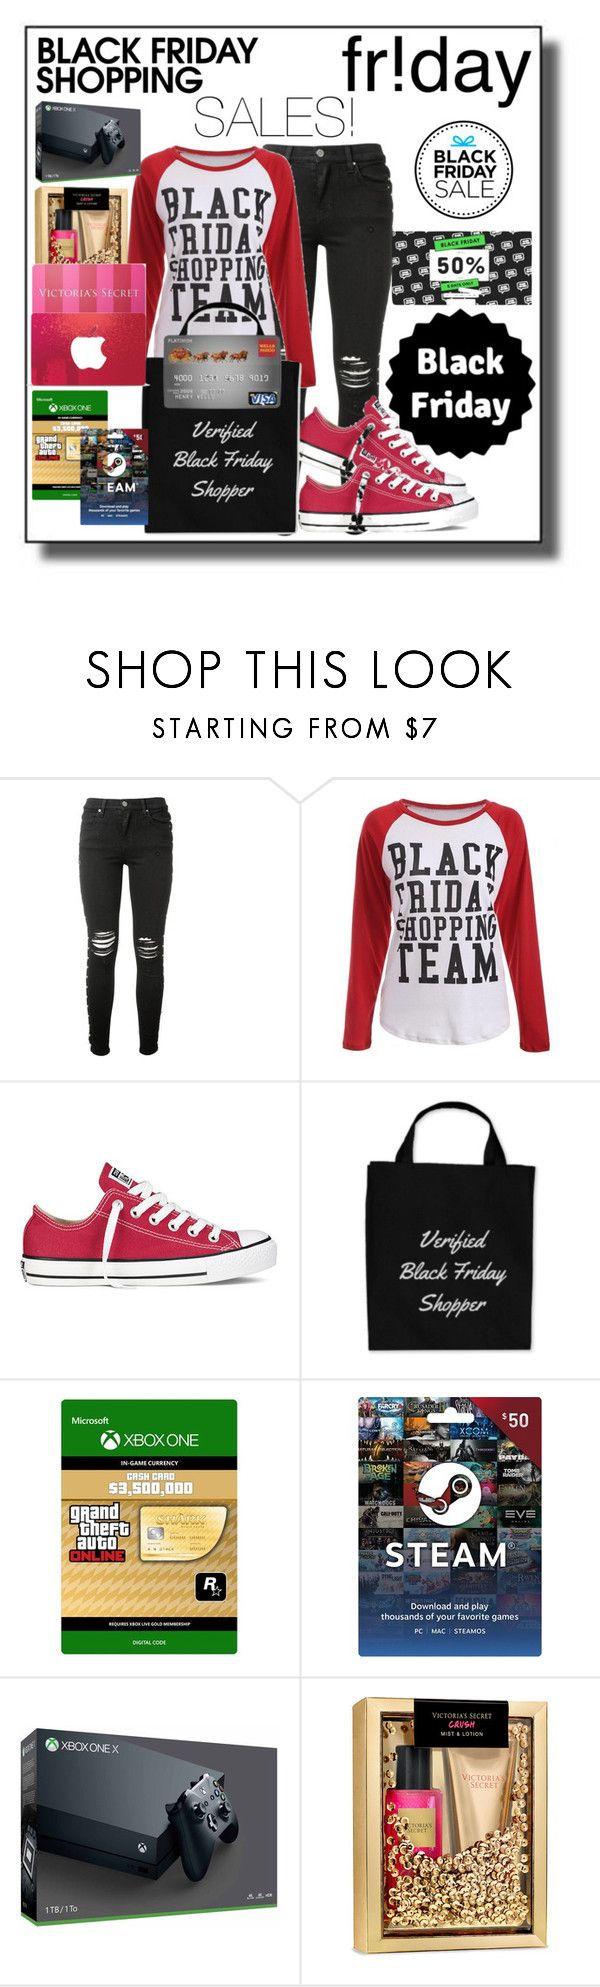 """IT'S BLACK FRIDAY COMING"" by lebanese-qv33nv ❤ liked on Polyvore featuring AMIRI, Converse, Topshop and Victoria's Secret"